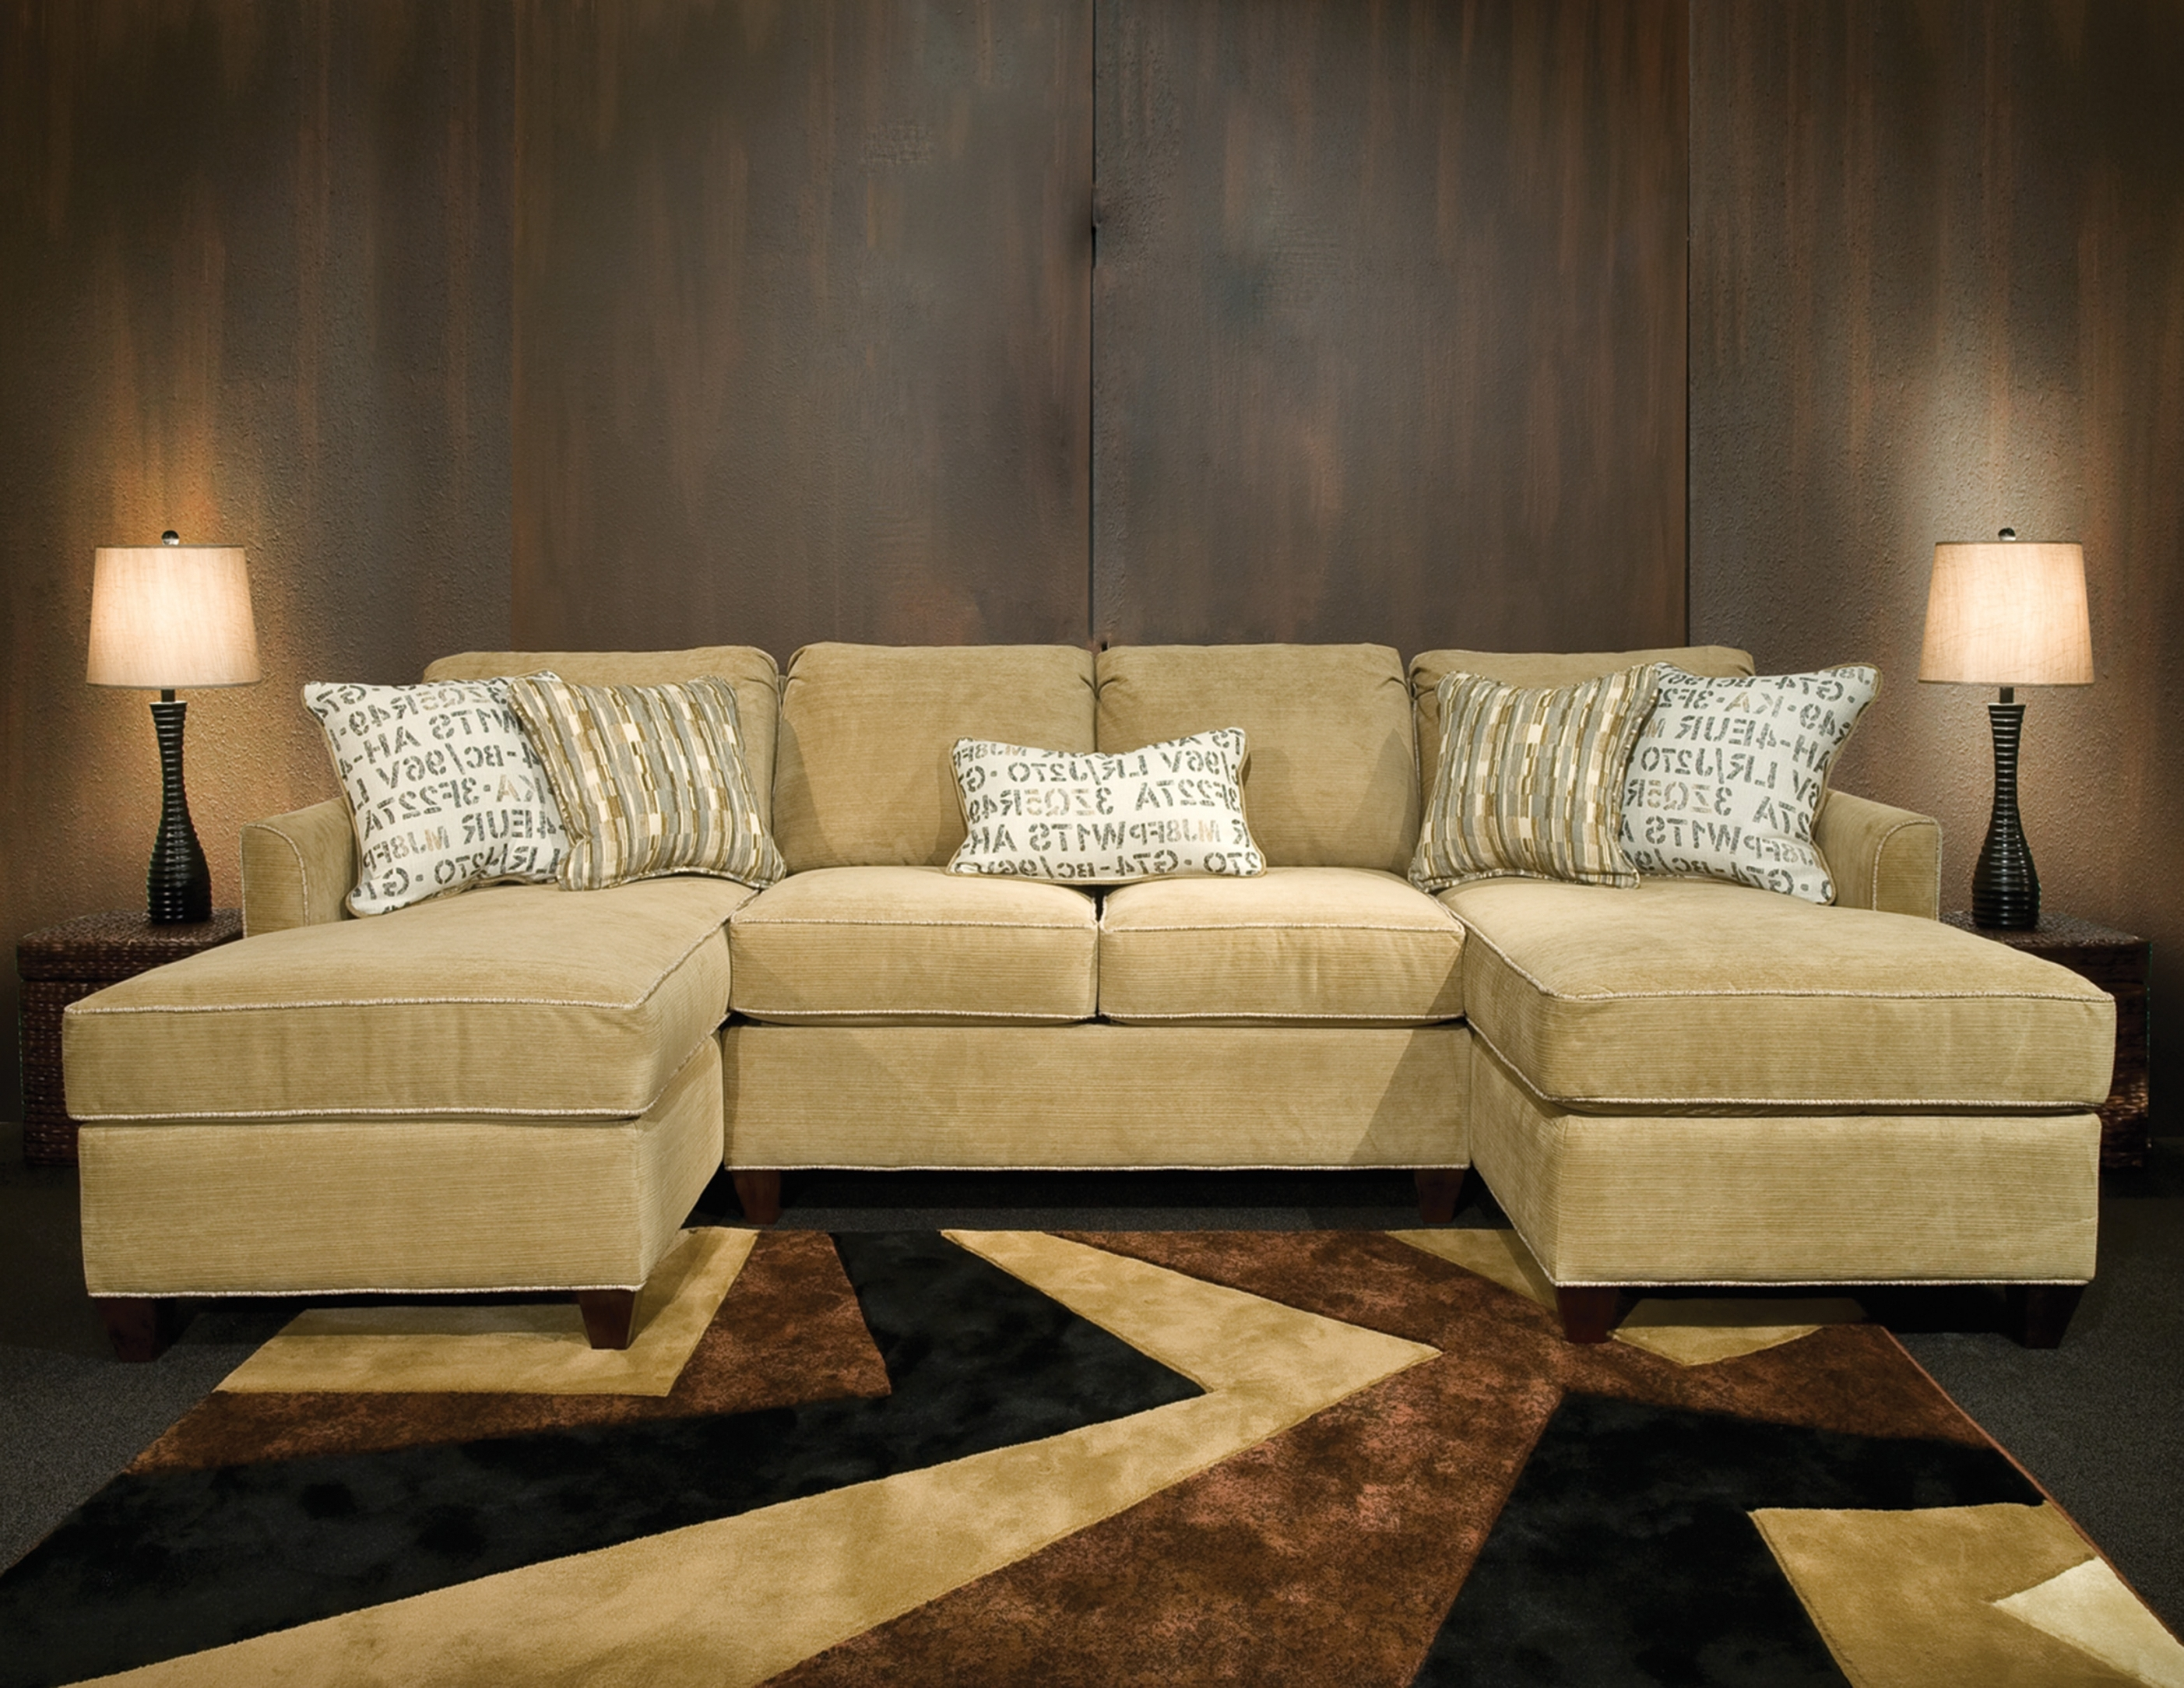 Current Rooms To Go Sectional Sofas Intended For Rooms To Go Sofas – Free Online Home Decor – Techhungry (View 5 of 20)